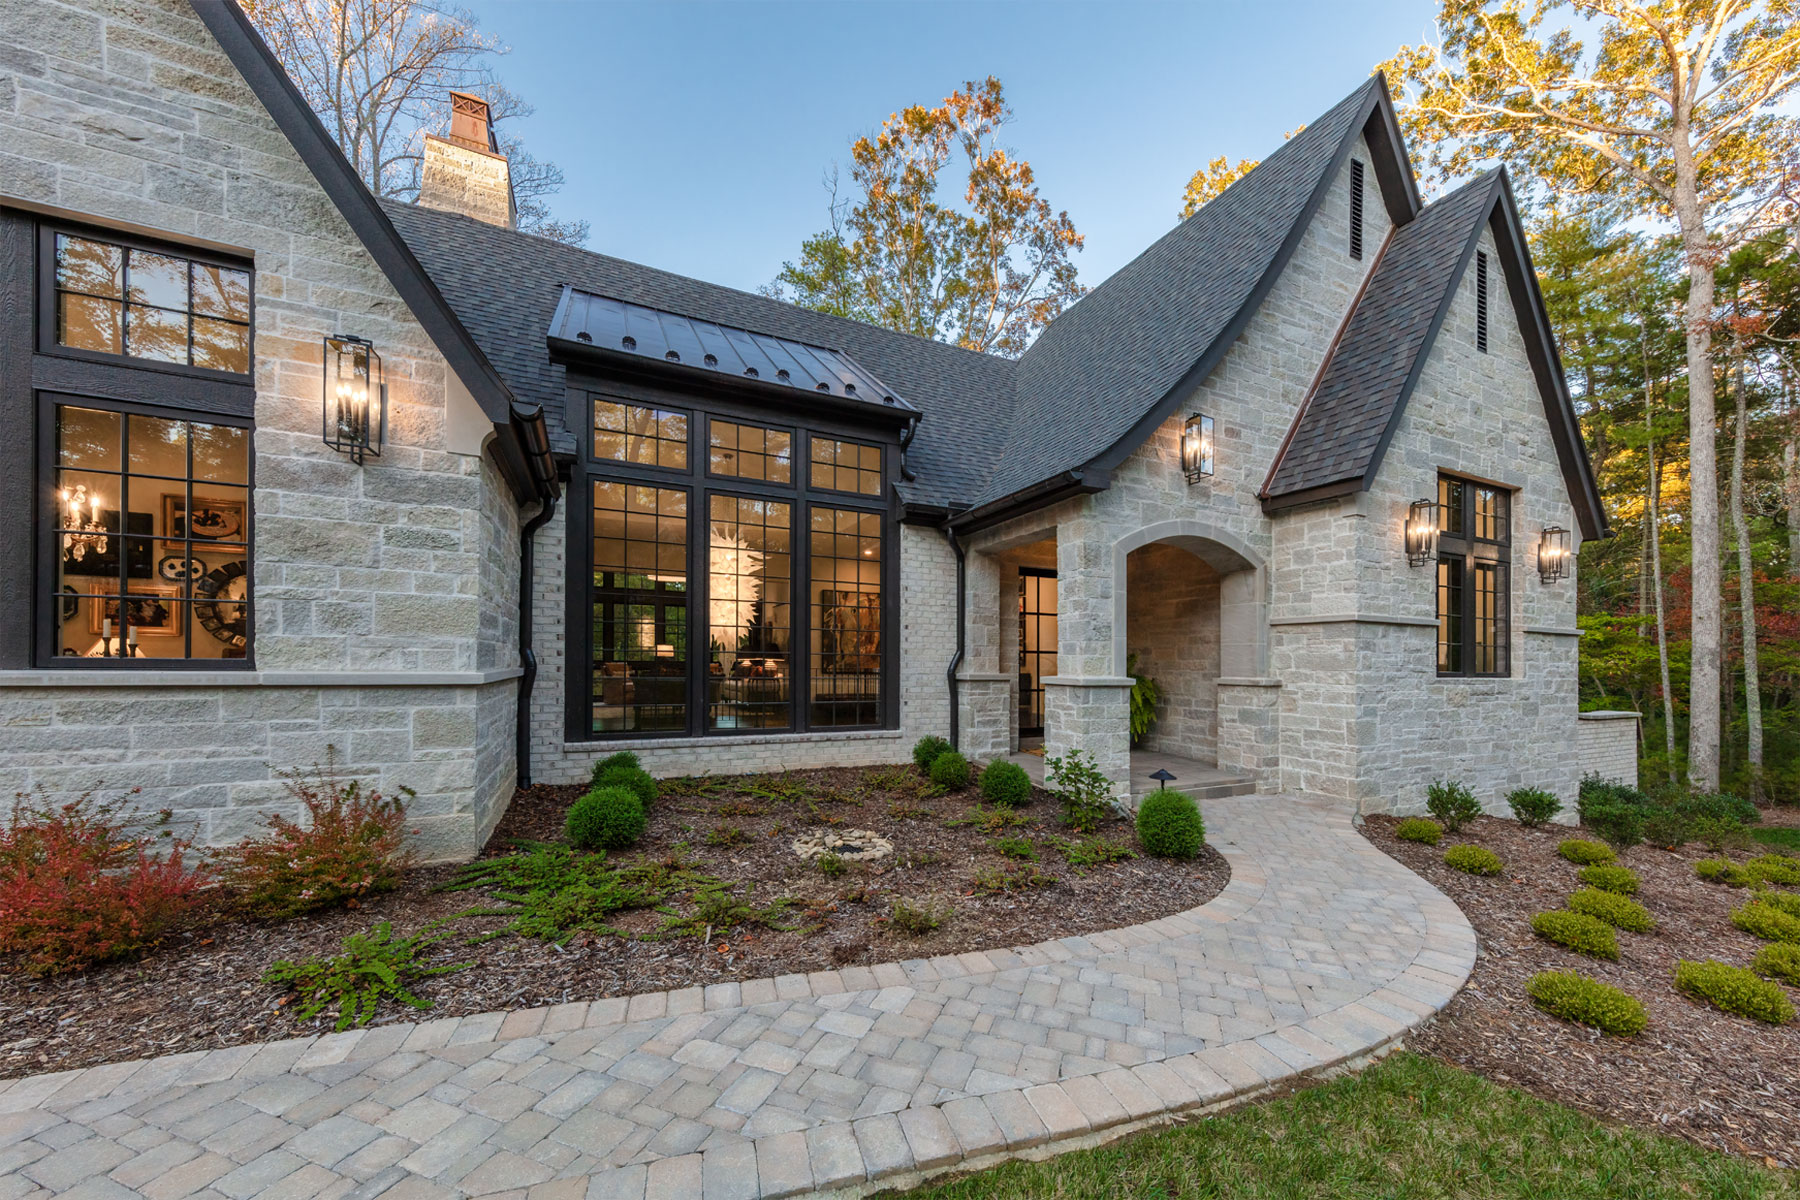 Front entry and walkway to white stone and brick mountain home